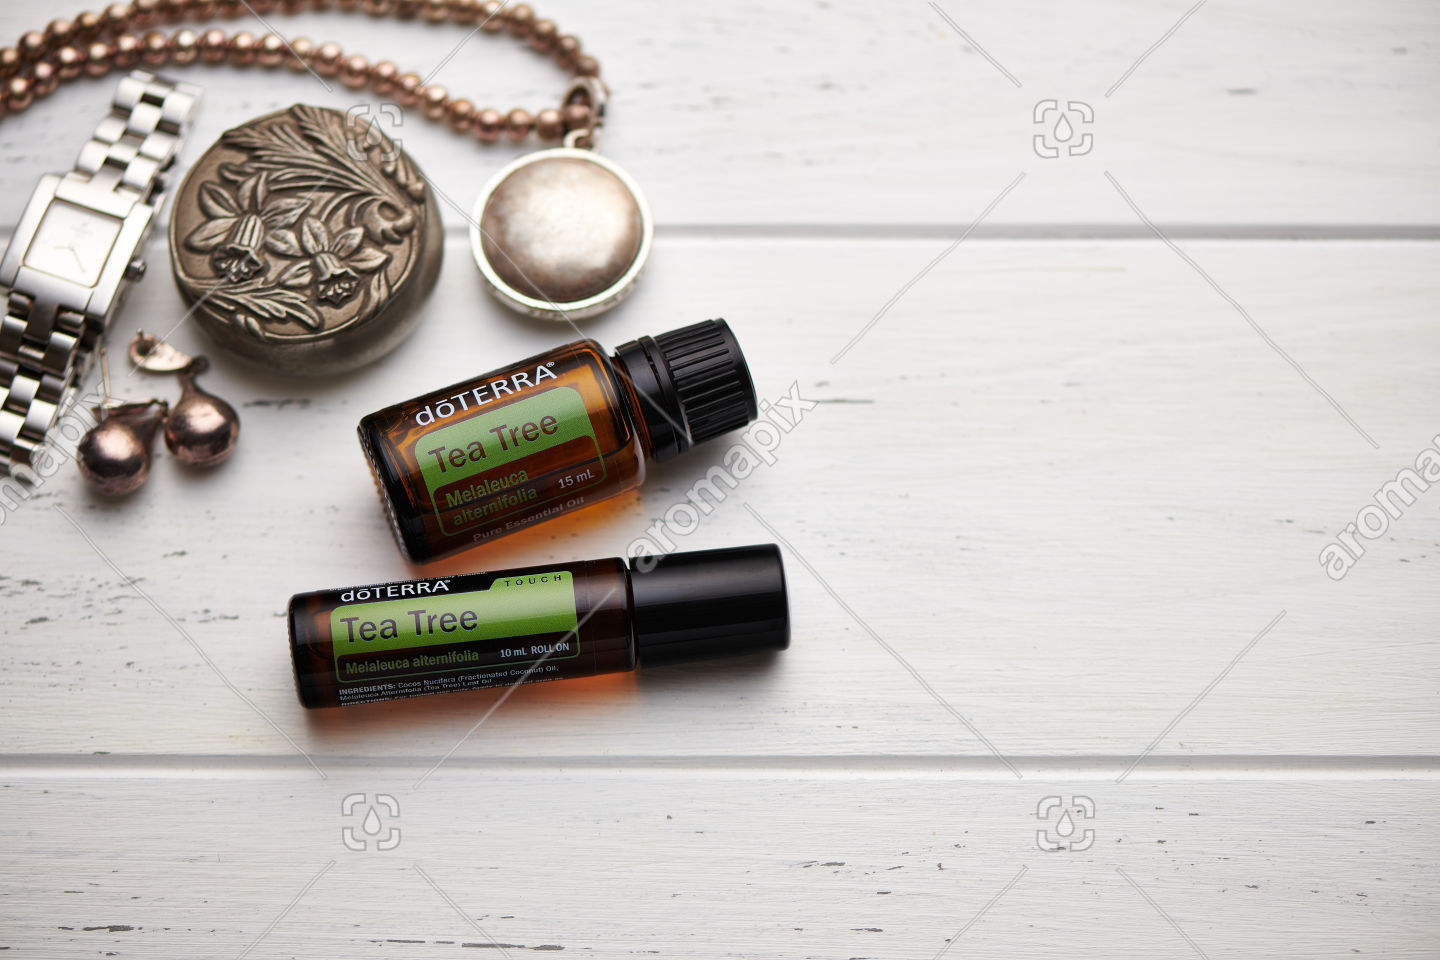 doTERRA Tea Tree and Tea Tree Touch on rustic background